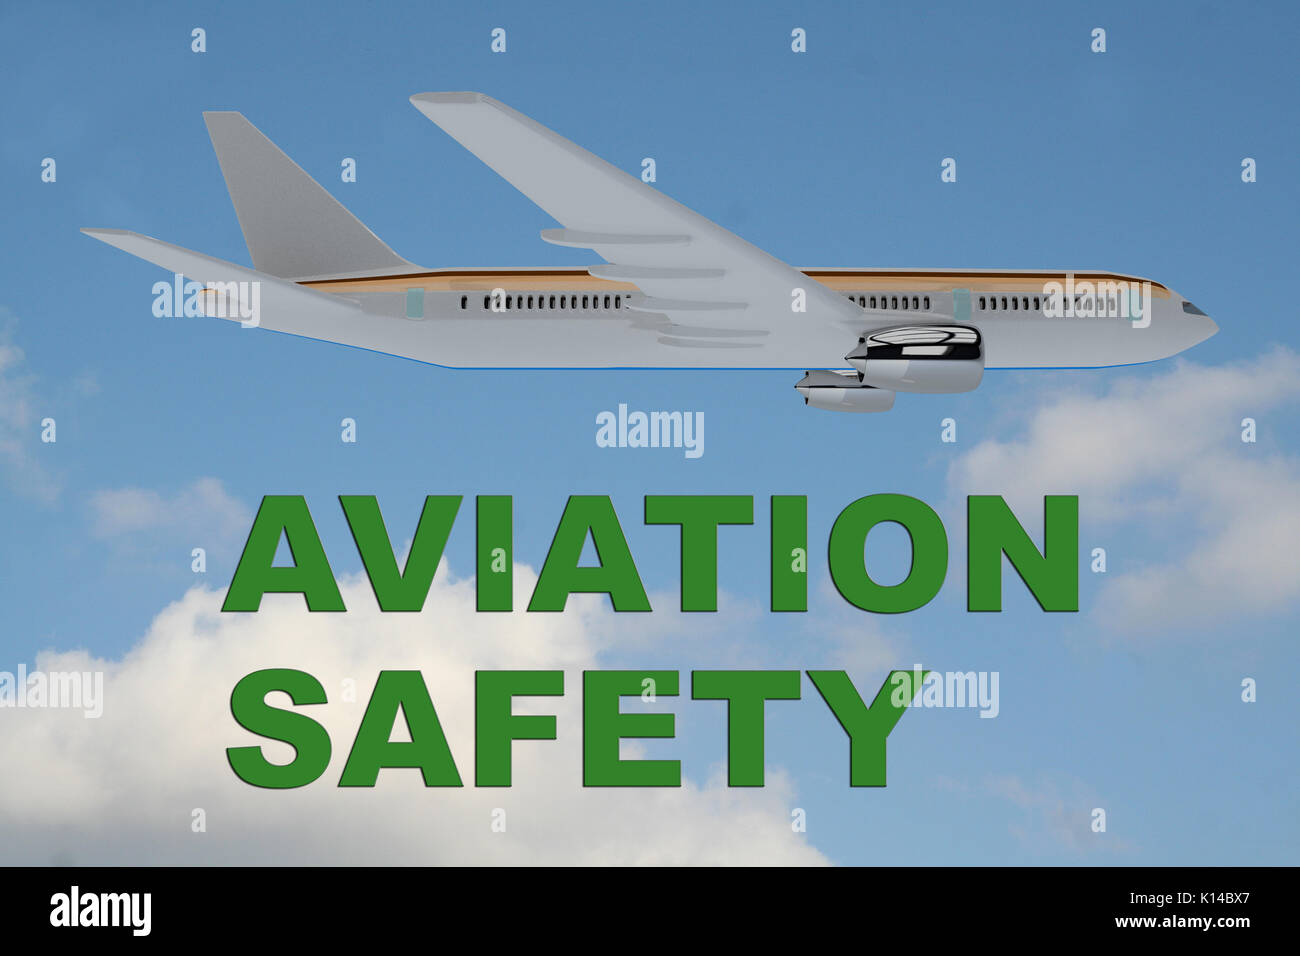 3D illustration of 'AVIATION SAFETY' title on cloudy sky as a background, under an airplane. - Stock Image